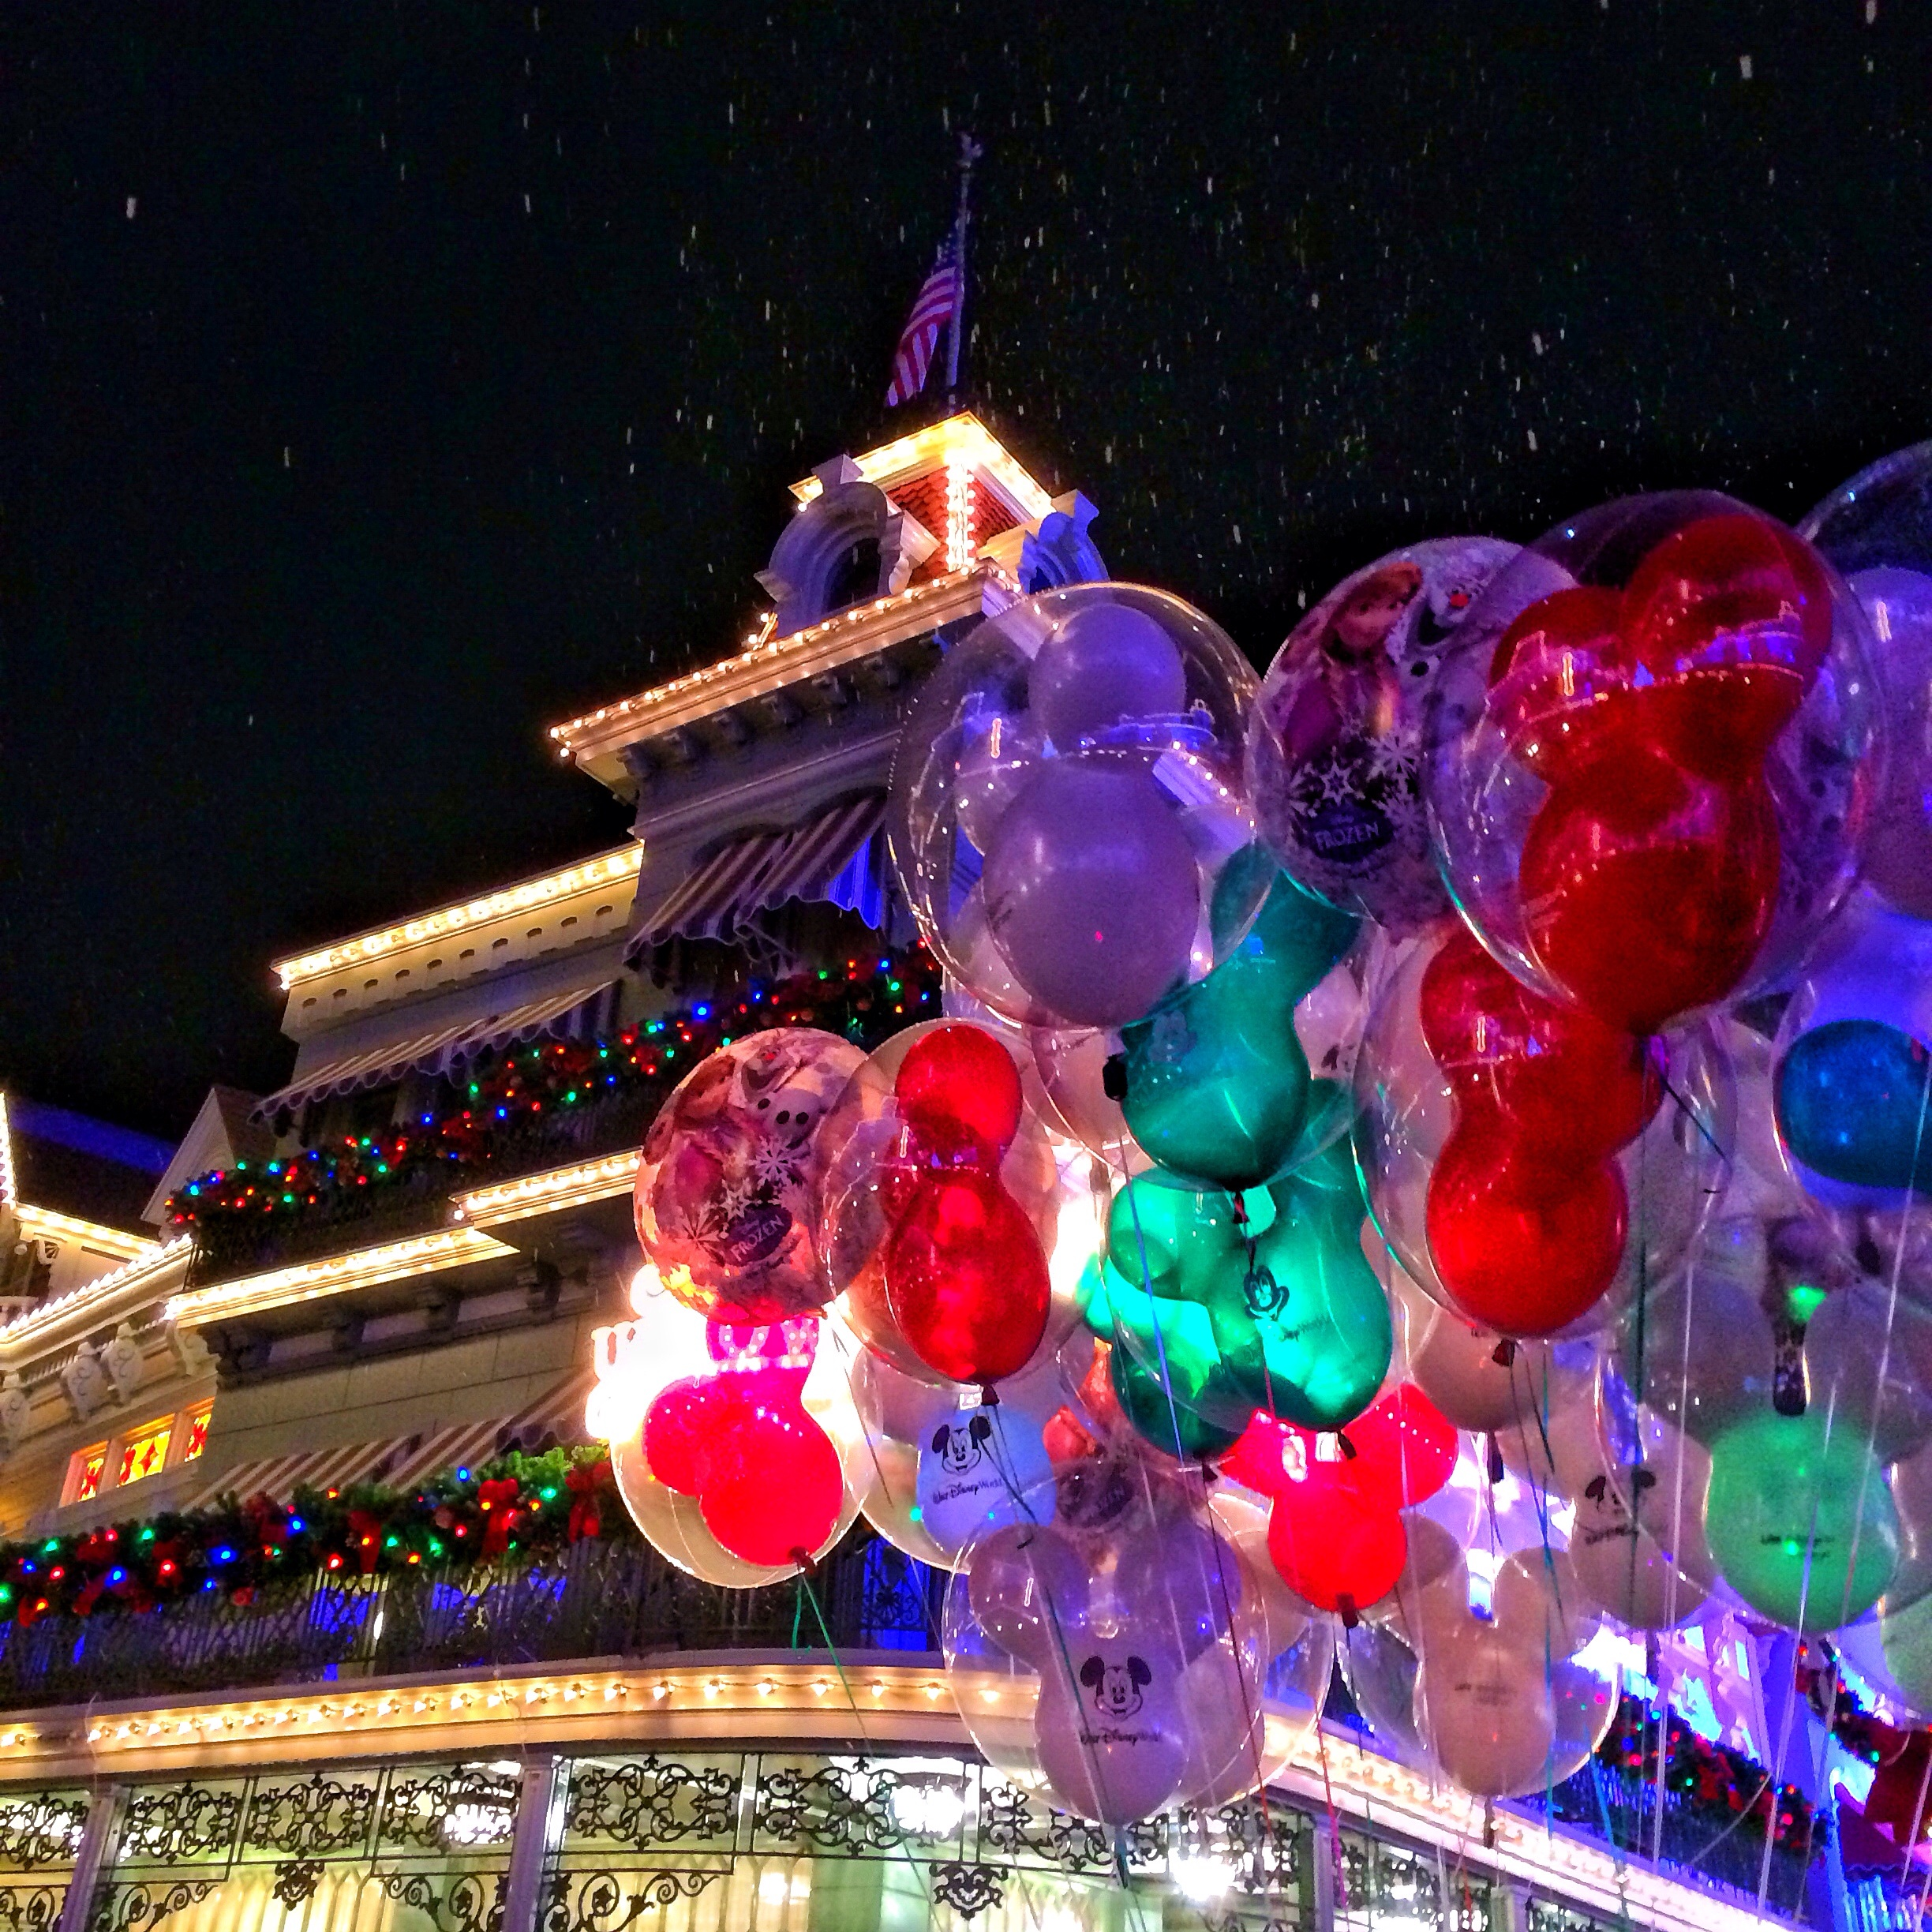 2014 mickeys very merry christmas party in the magic kingdom - Mickeys Very Merry Christmas